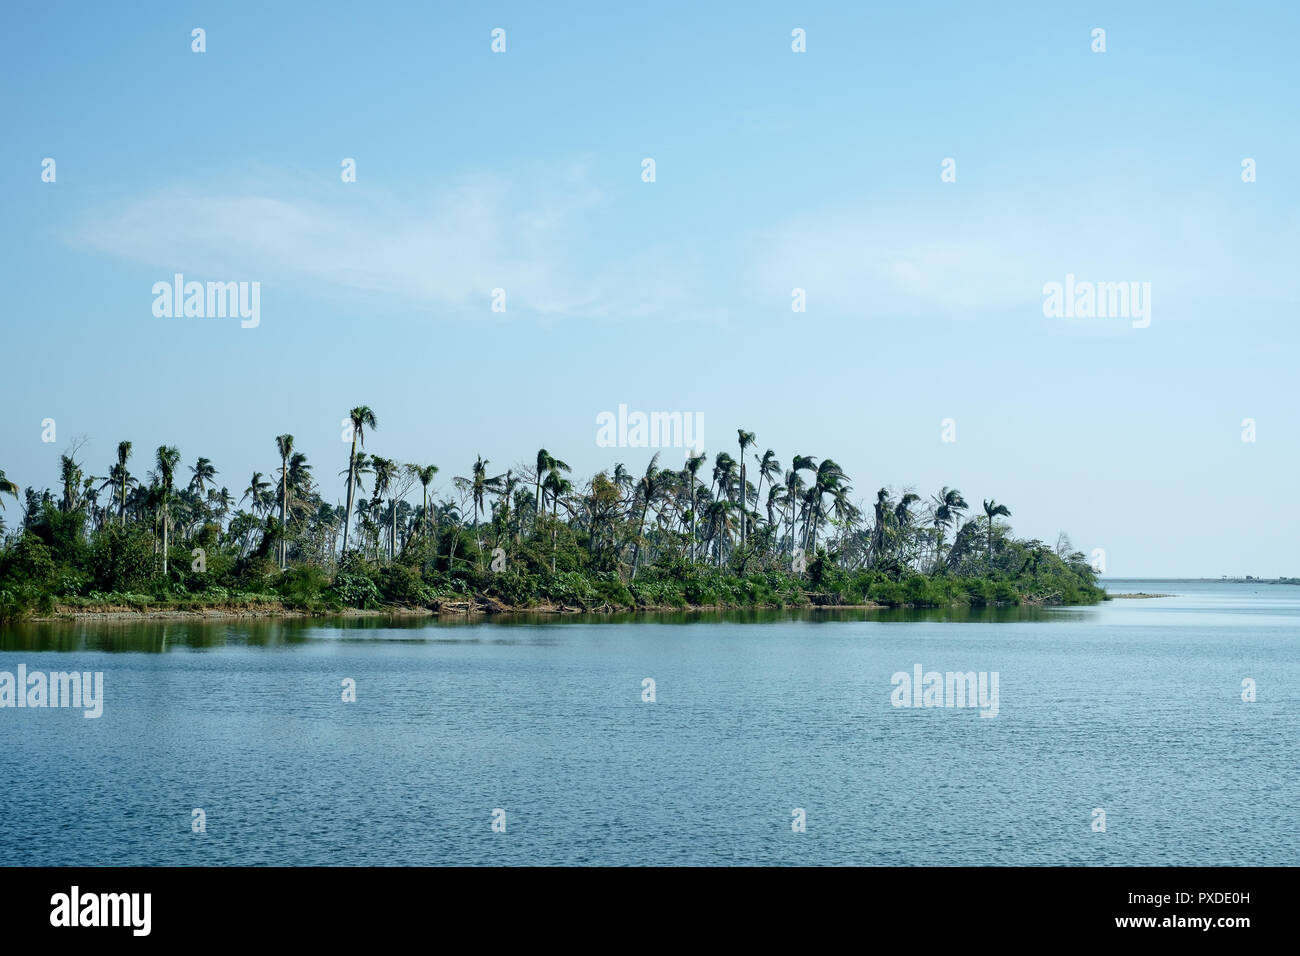 The River Bank of the River Toa - Stock Image